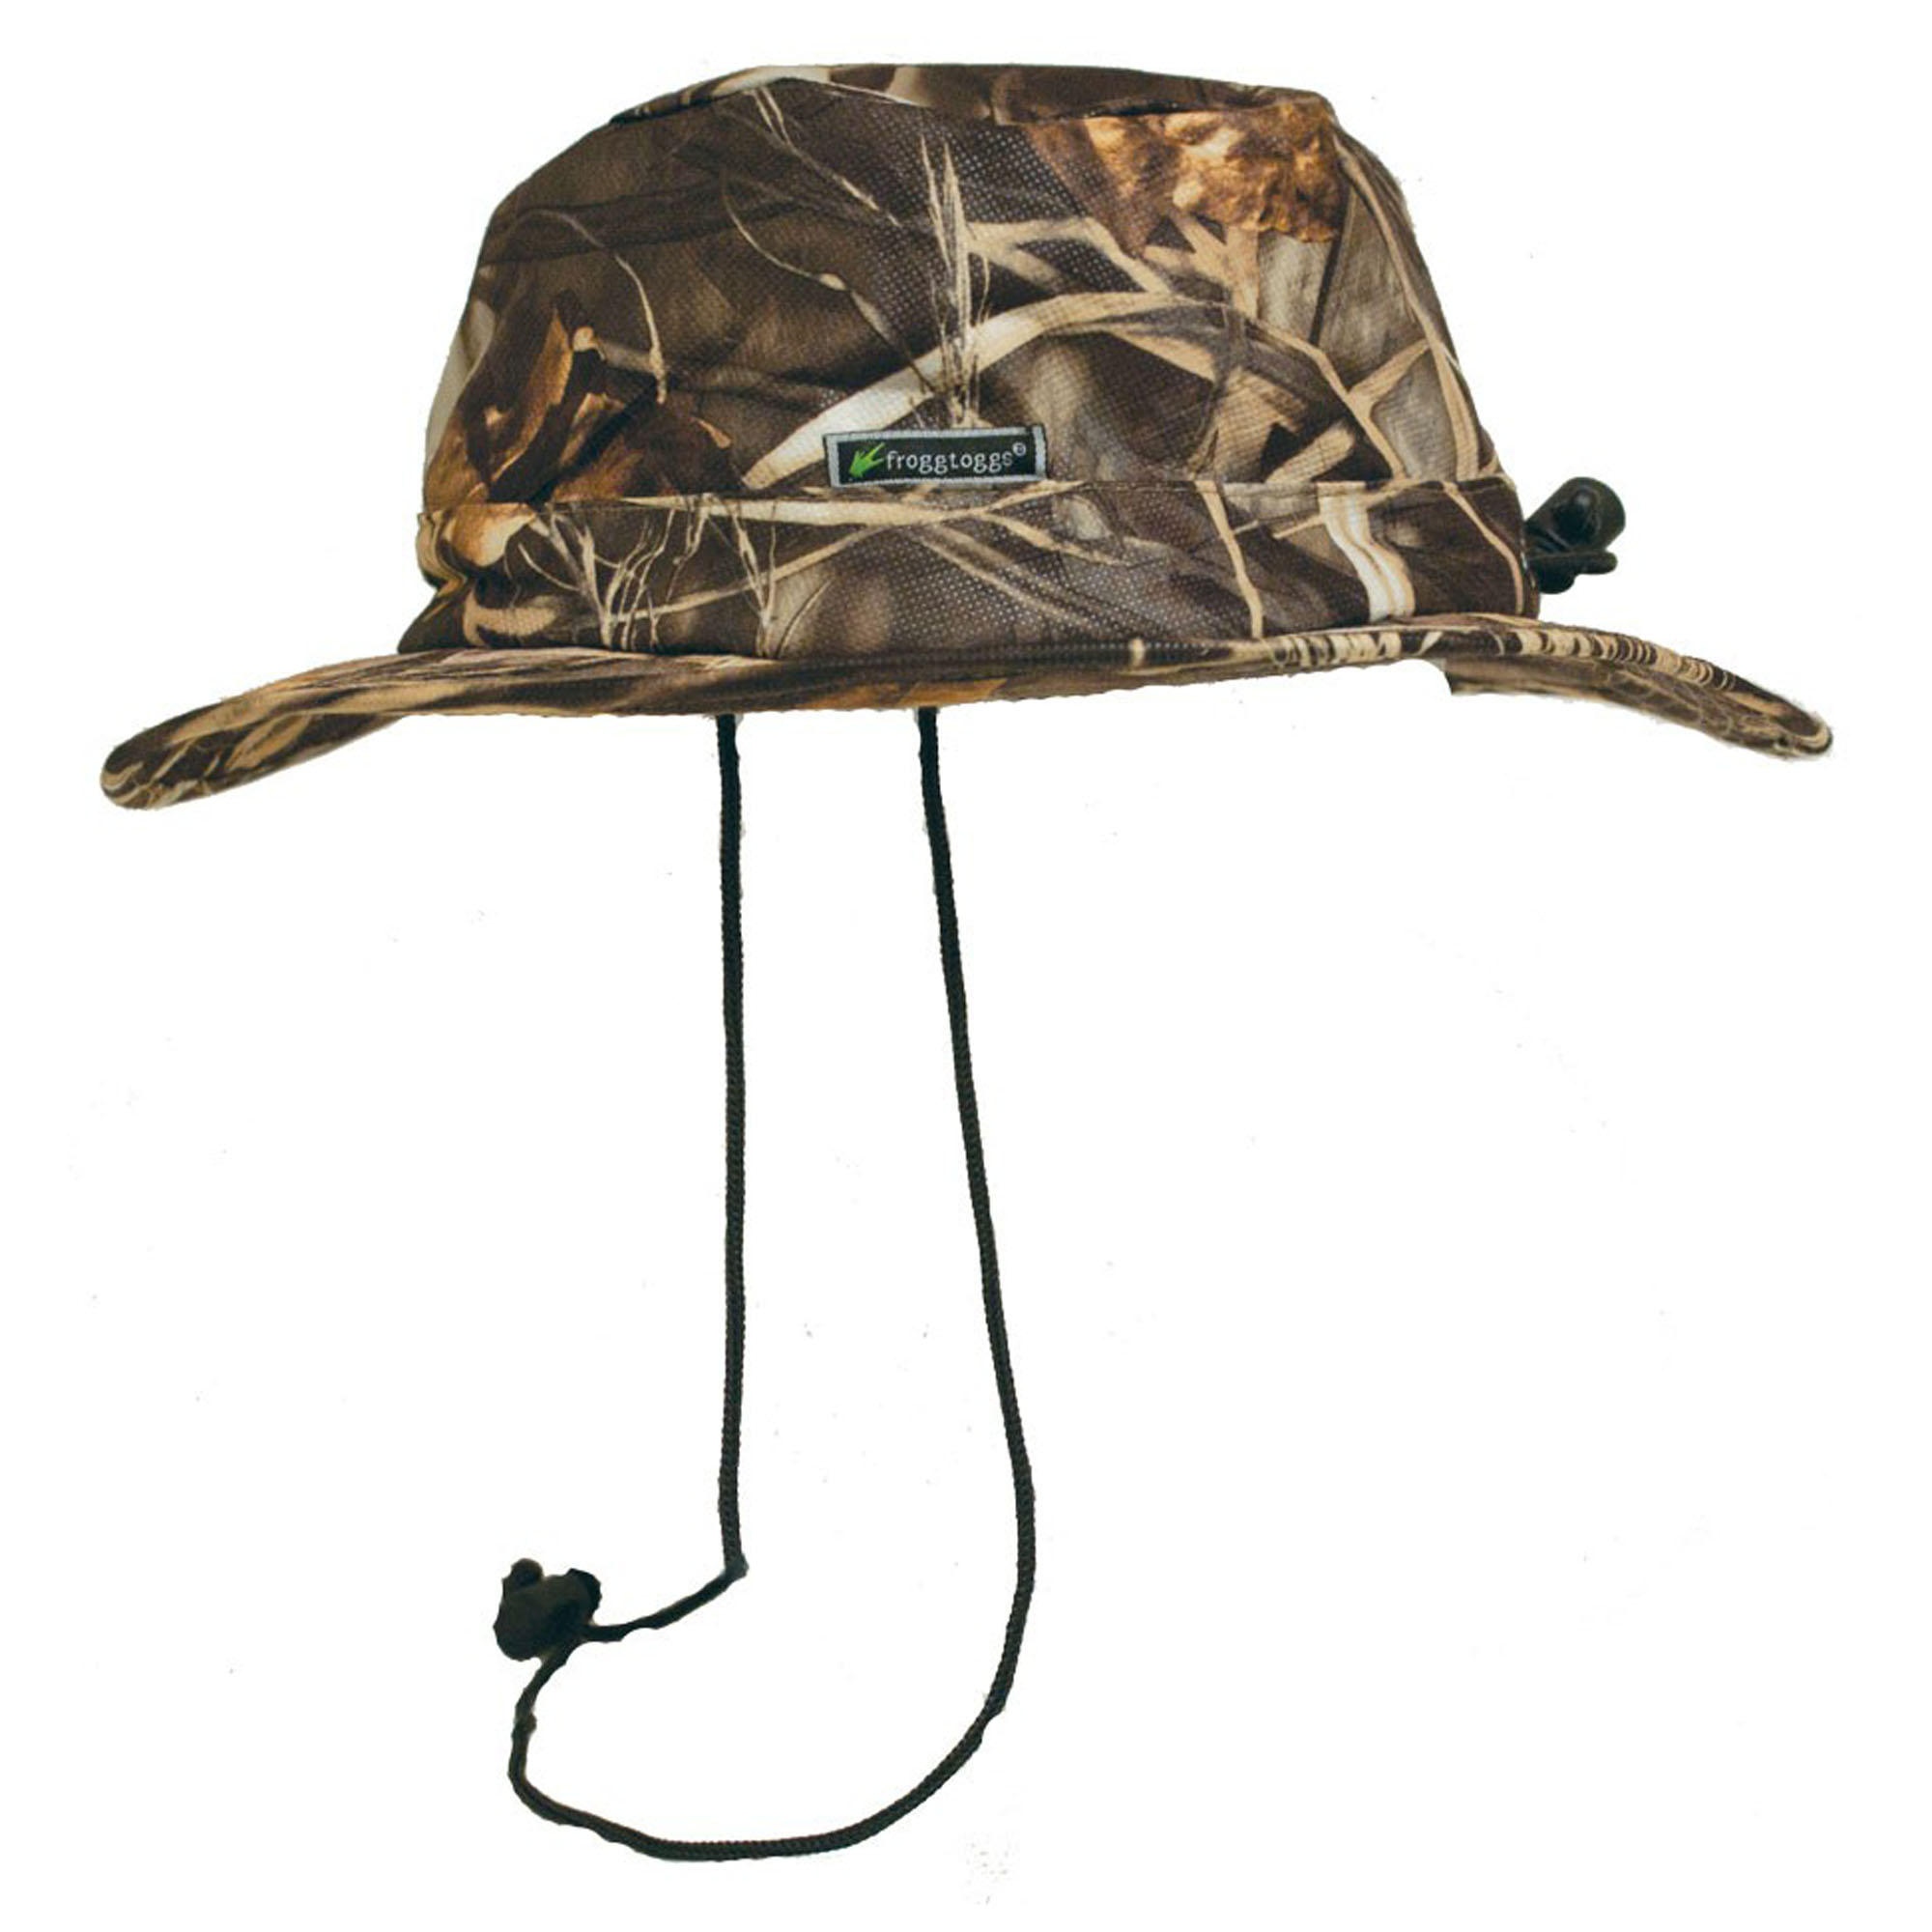 a34ad7aa2cdd9 Frogg Toggs Breathable Bucket Hat RT Max 5 FTH101-56 25% Off